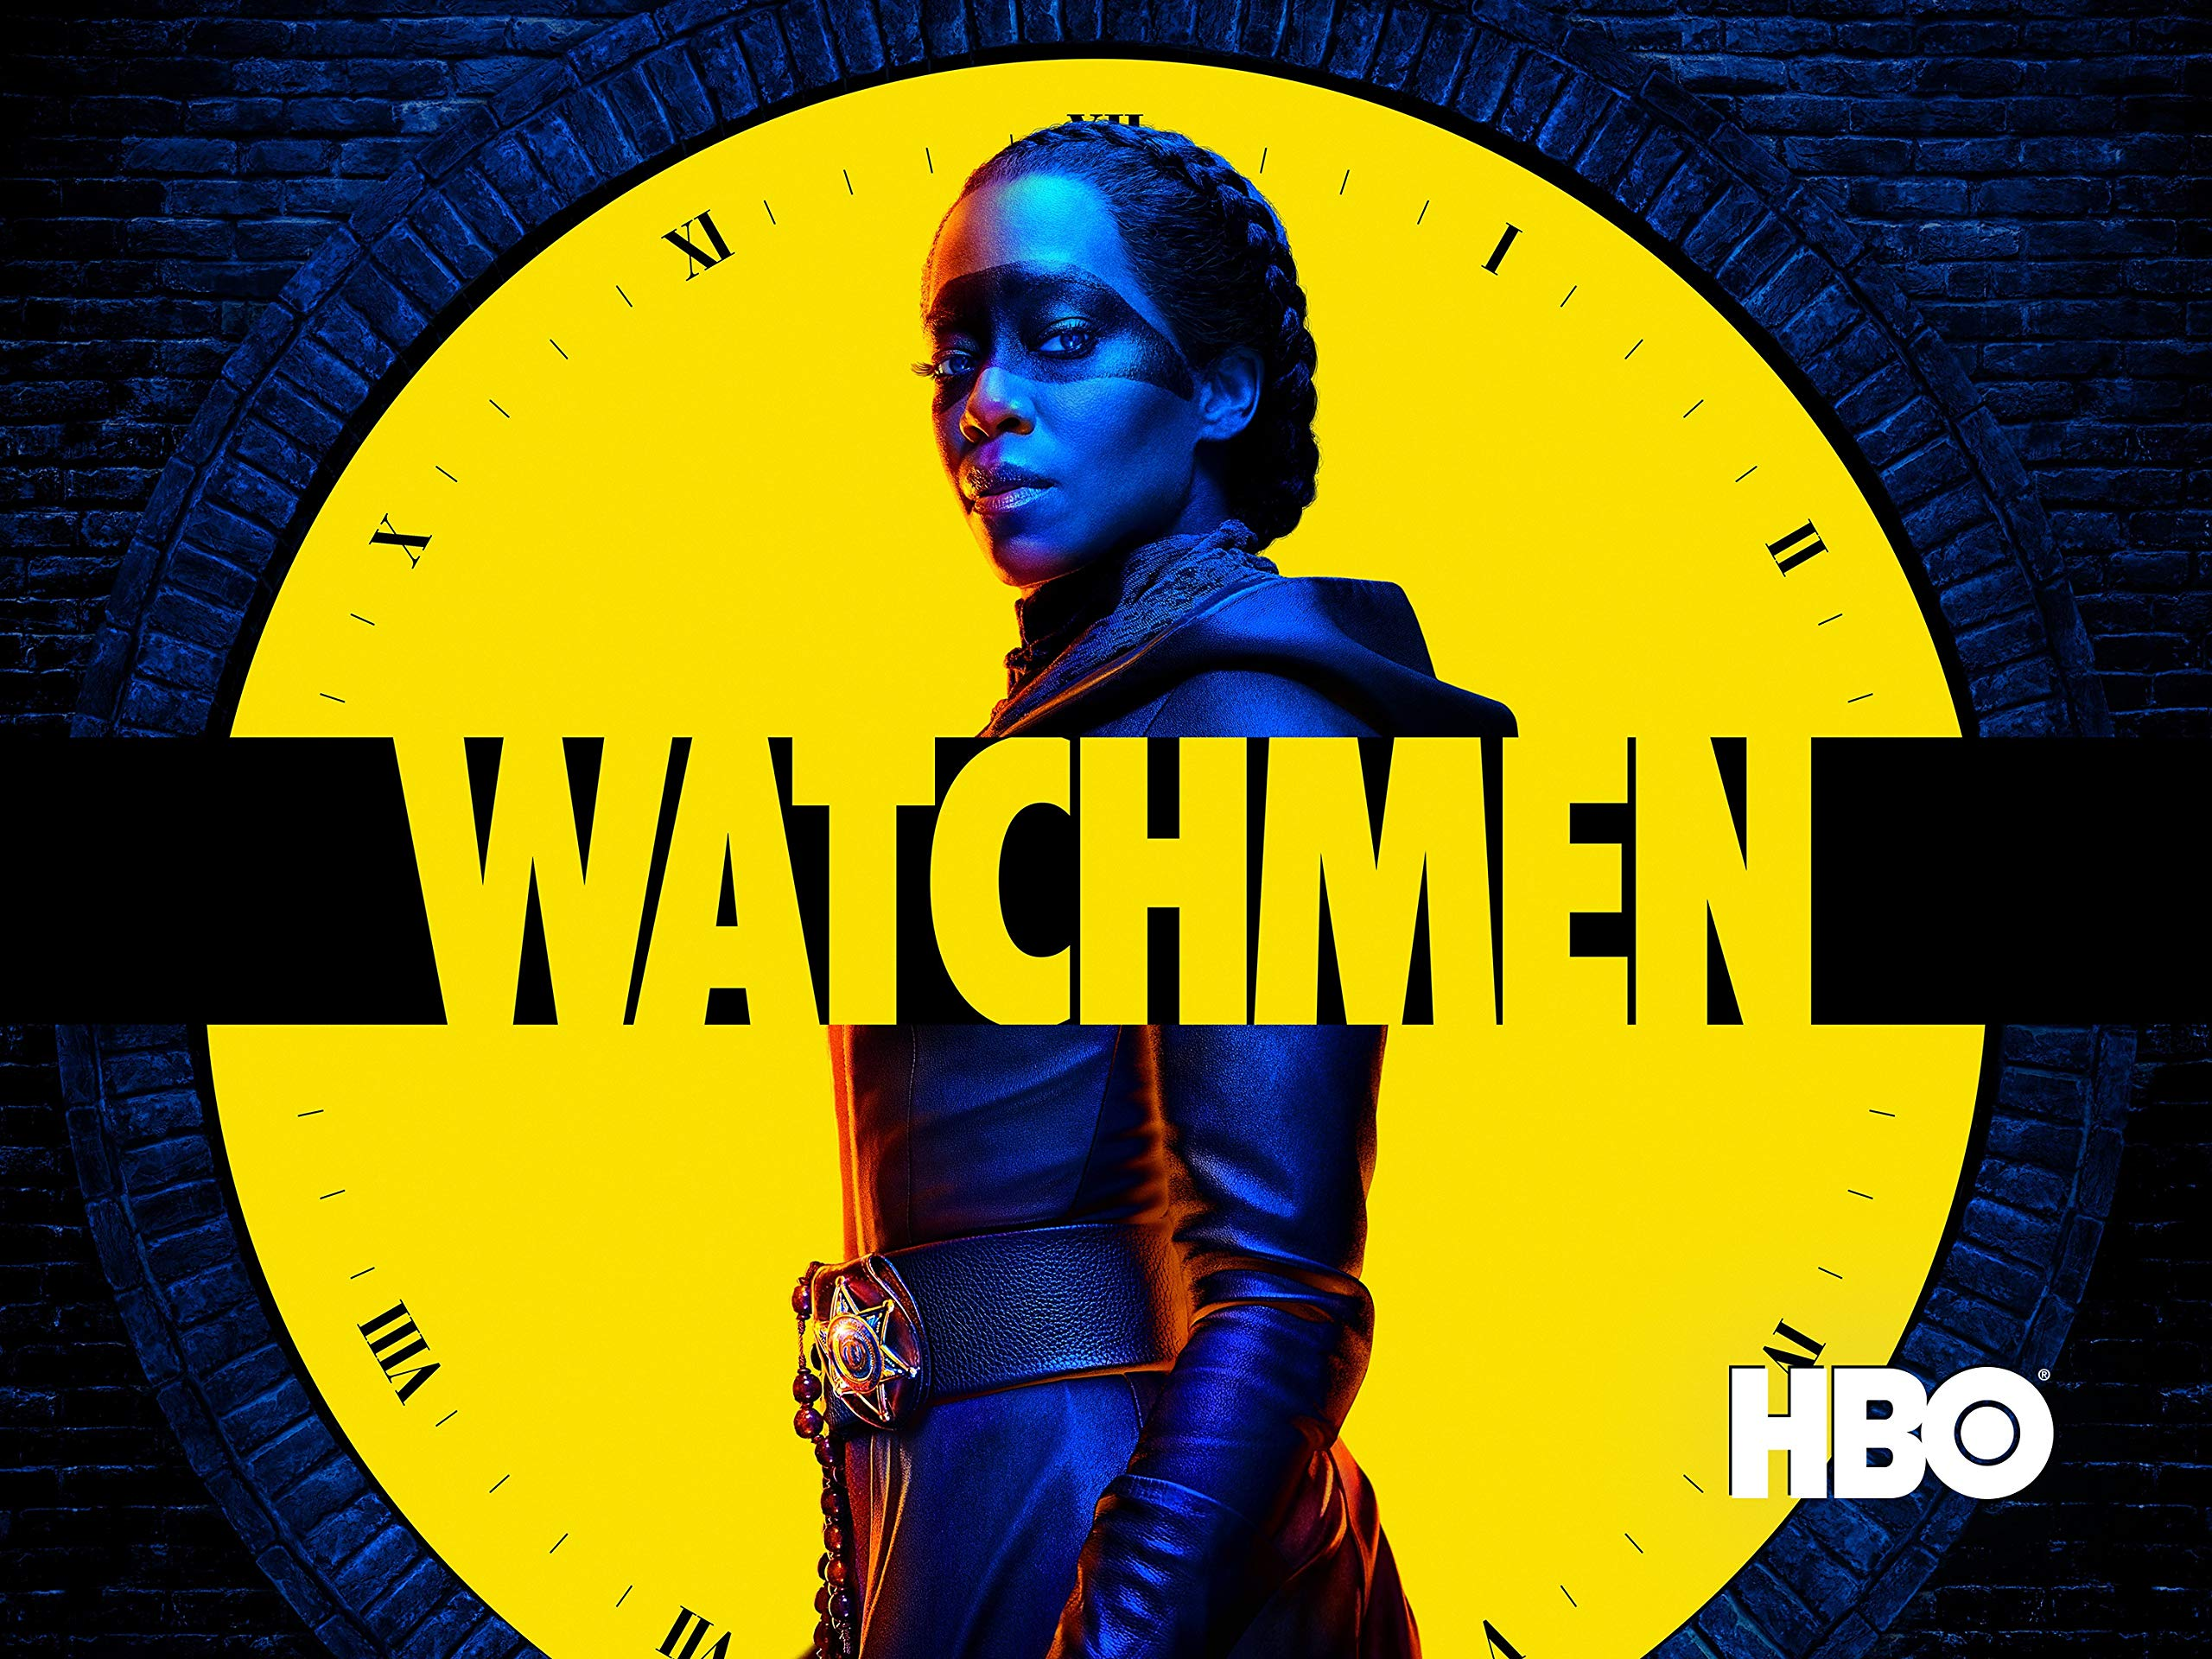 Amazon.com: Watch Watchmen - Season 1 | Prime Video